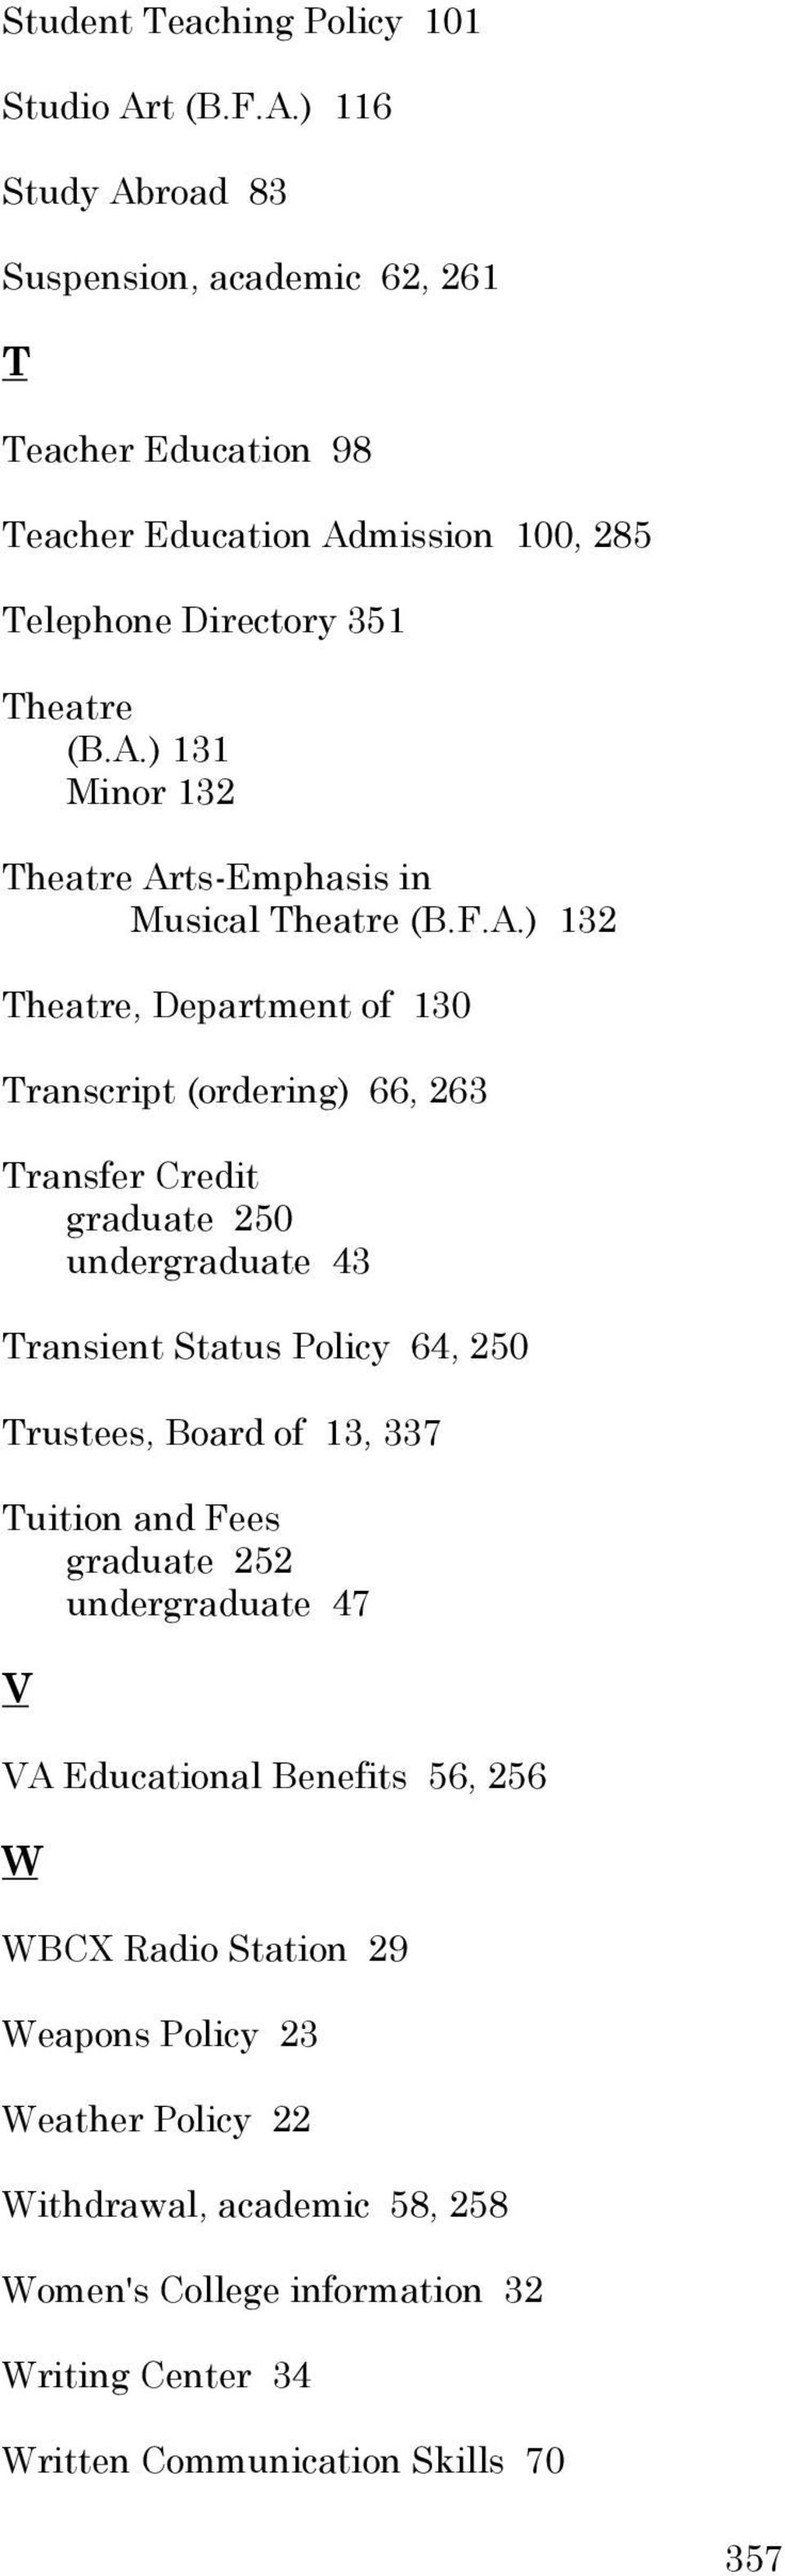 F.A.) 132 Theatre, Department of 130 Transcript (ordering) 66, 263 Transfer Credit graduate 250 undergraduate 43 Transient Status Policy 64, 250 Trustees, Board of 13,